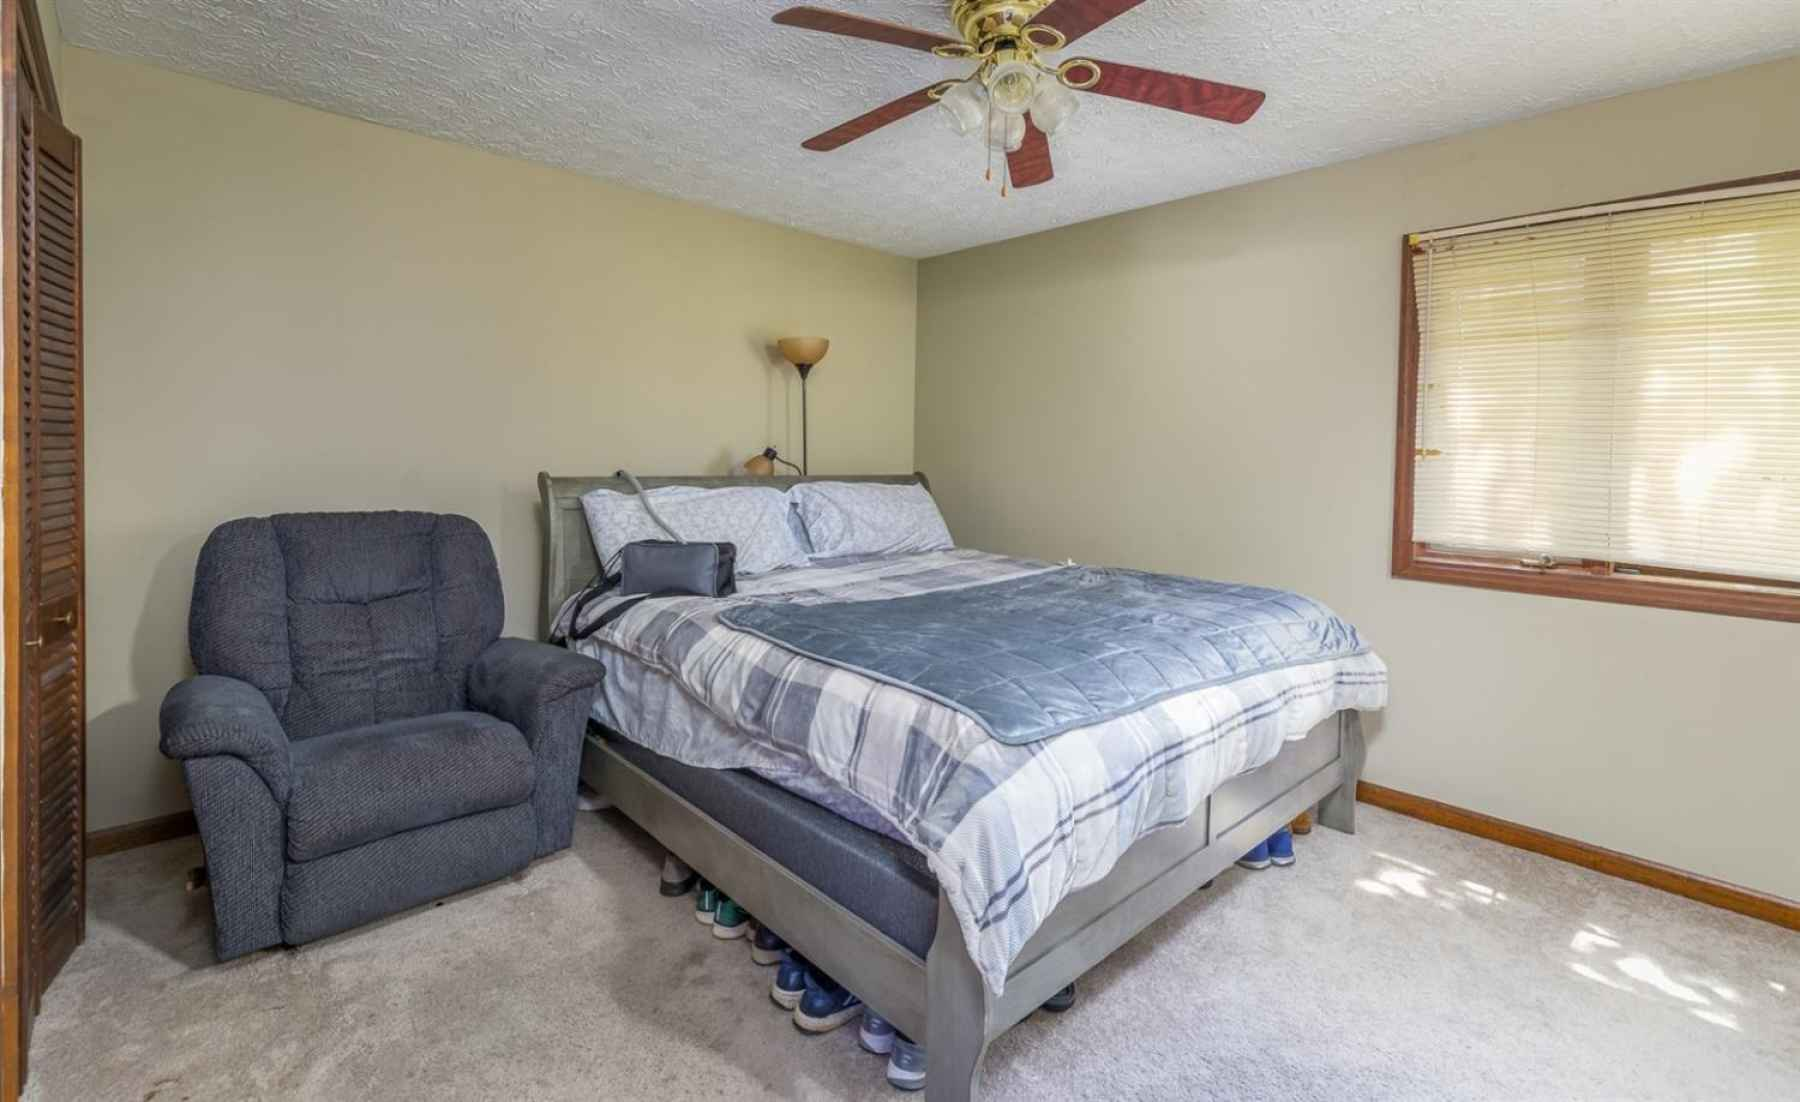 The master bedroom offers lots of room